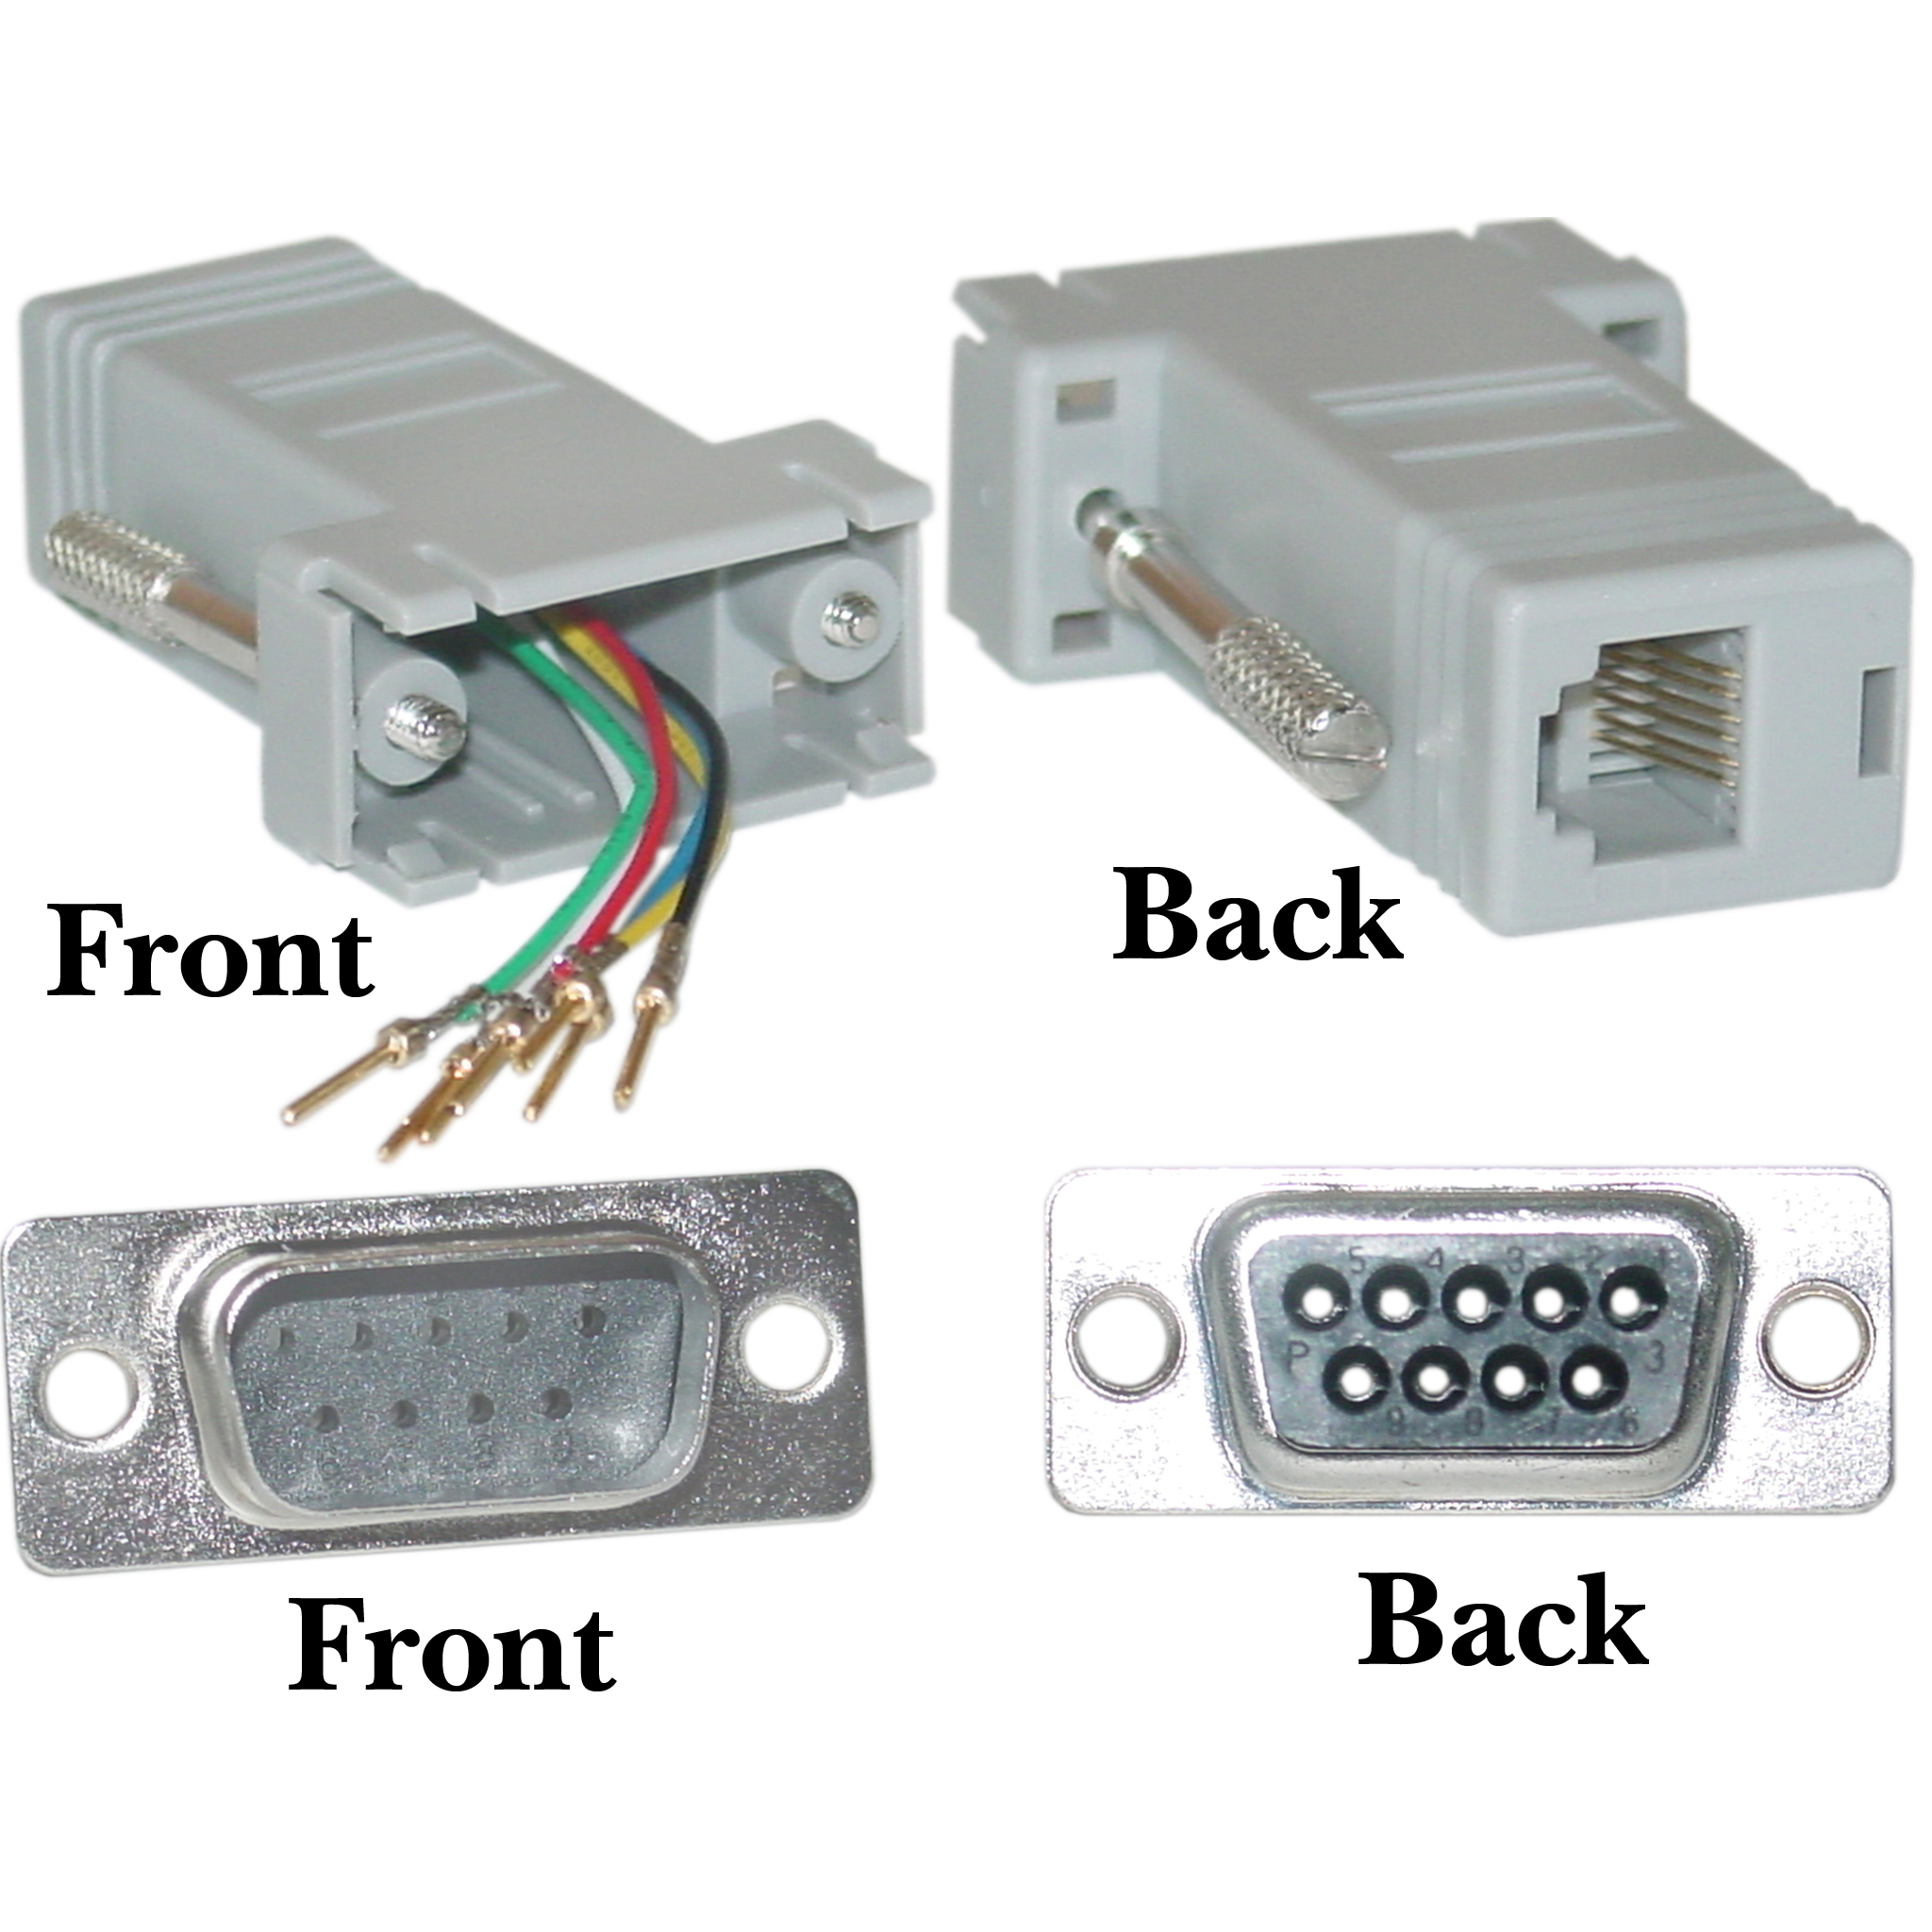 31d1 16200 modular adapter db9 male to rj12 gray db9 female to db9 male wiring diagram at mifinder.co